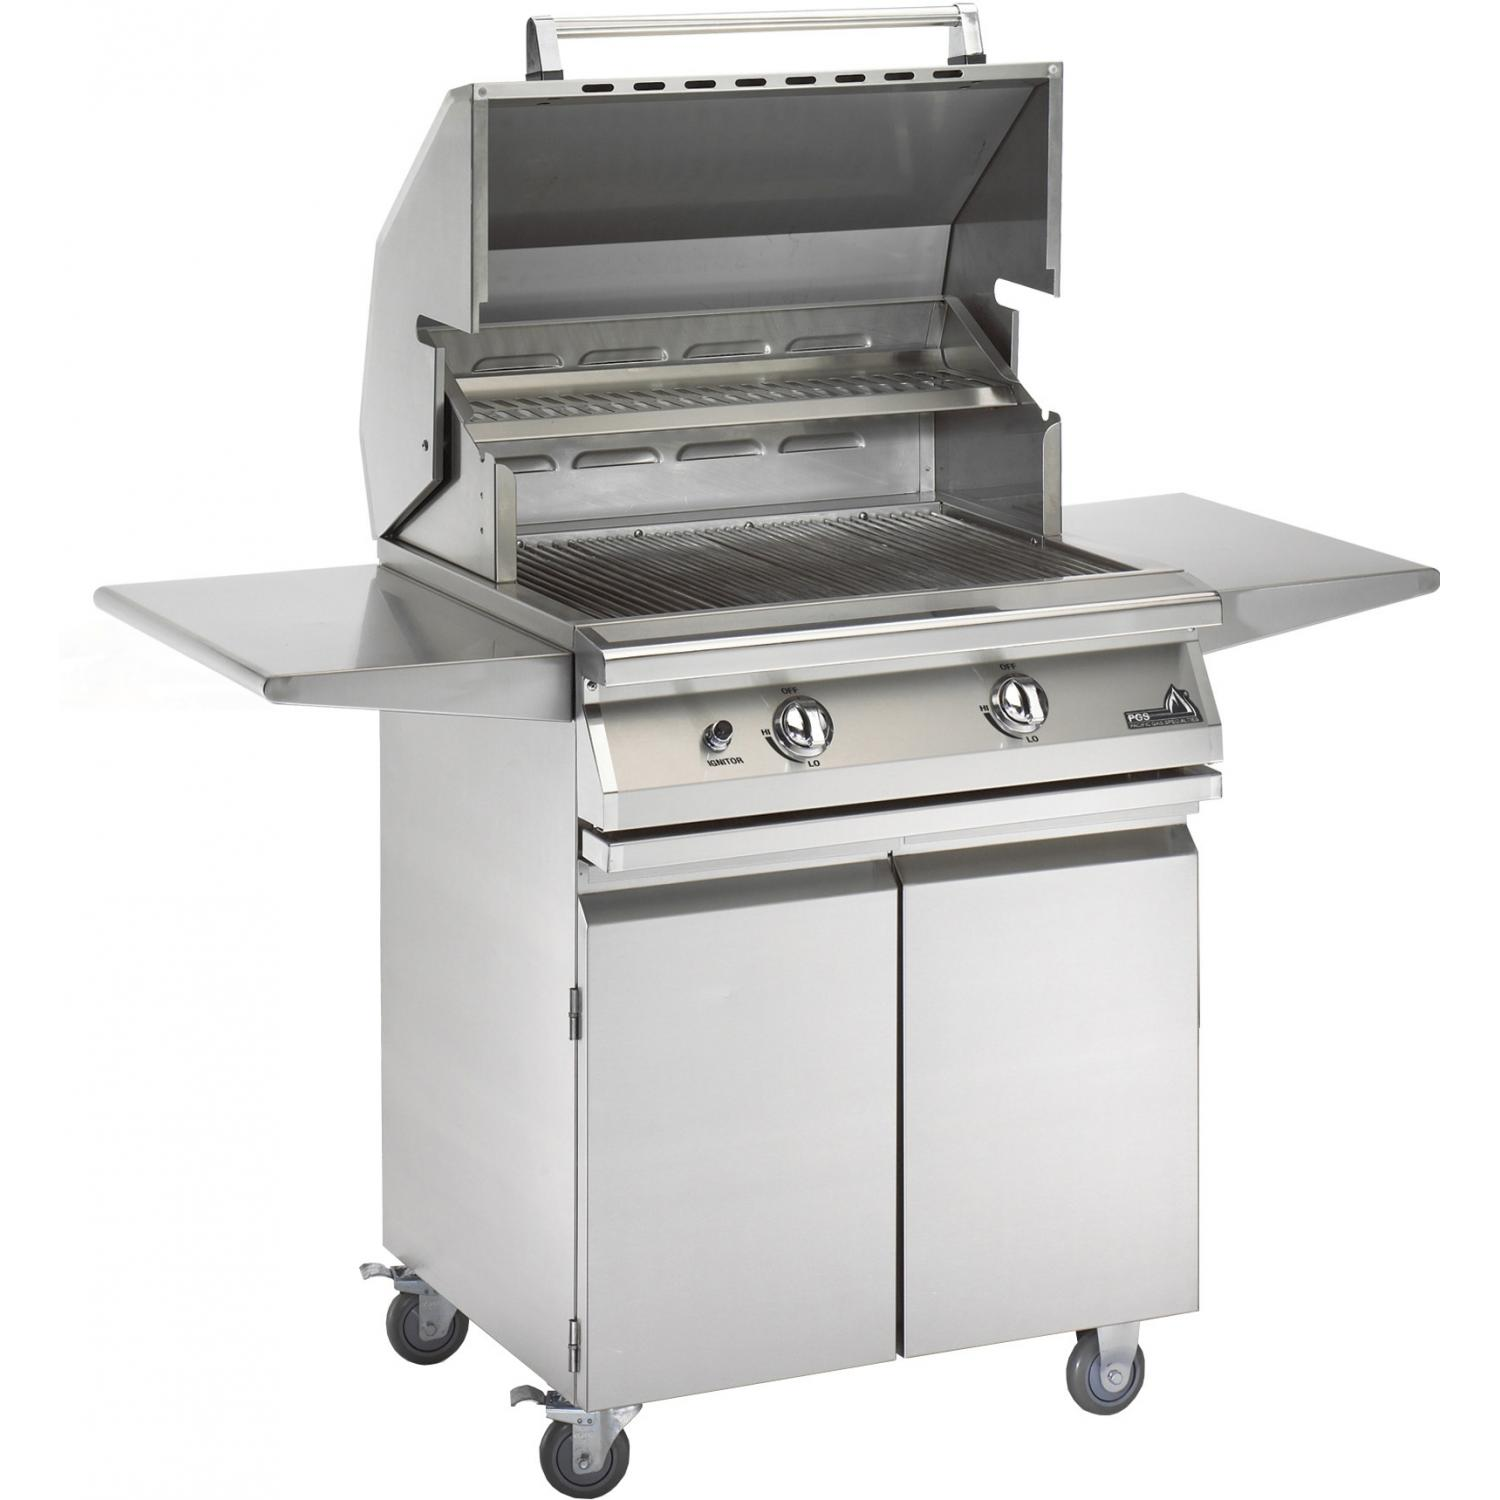 PGS Legacy Newport Gourmet 30-Inch Propane Gas Grill With Infrared Rear Burner And Rotisserie On Cart